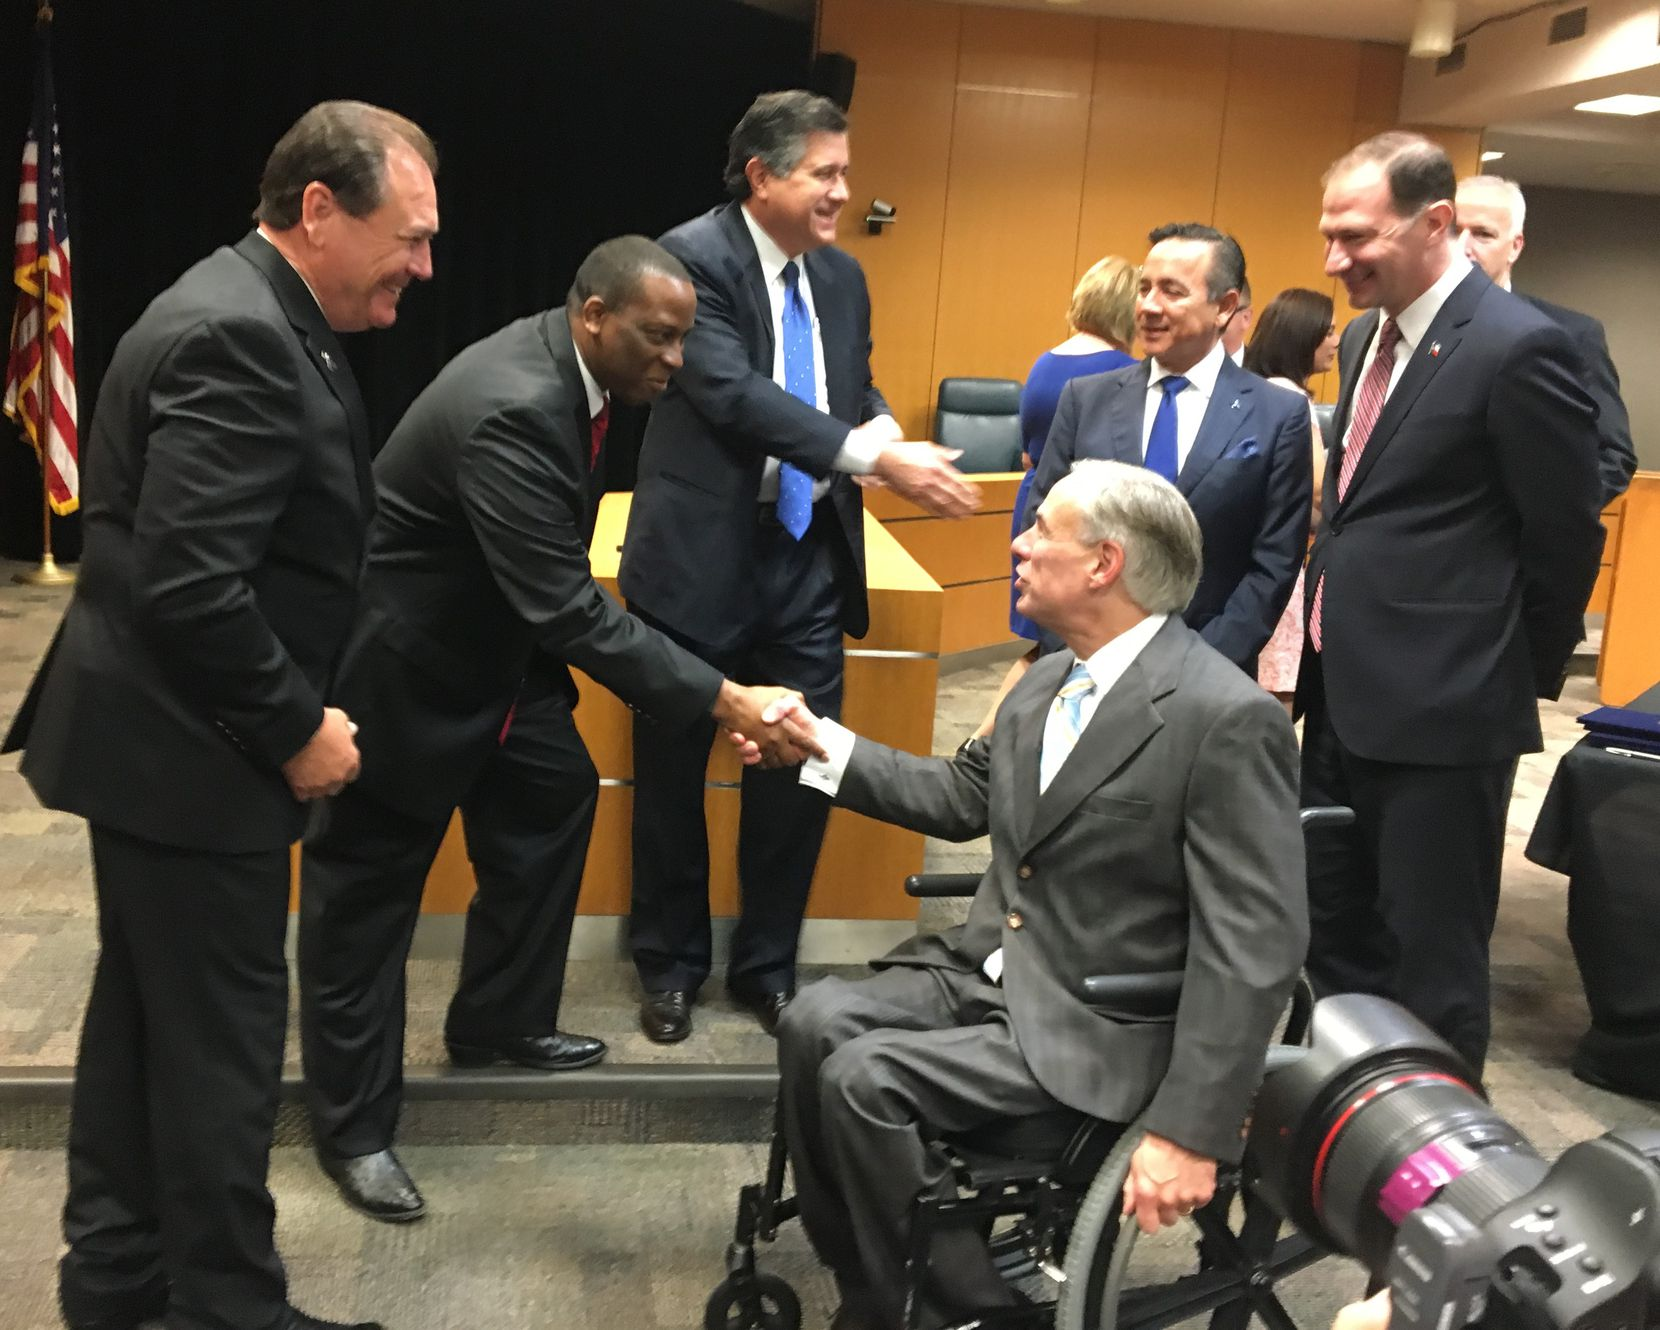 Gov. Greg Abbott shakes hands with executive commissioner of health and human services Charles Smith as protective services chief Hank Whitman, left, looks on. In background are four of nine lawmakers who joined the governor at a CPS bill signing -- from left, Rep. Richard Raymond, Sen. Carlos Uresti, Sen. Charles Schwertner and (partially obscured) Rep. James Frank.